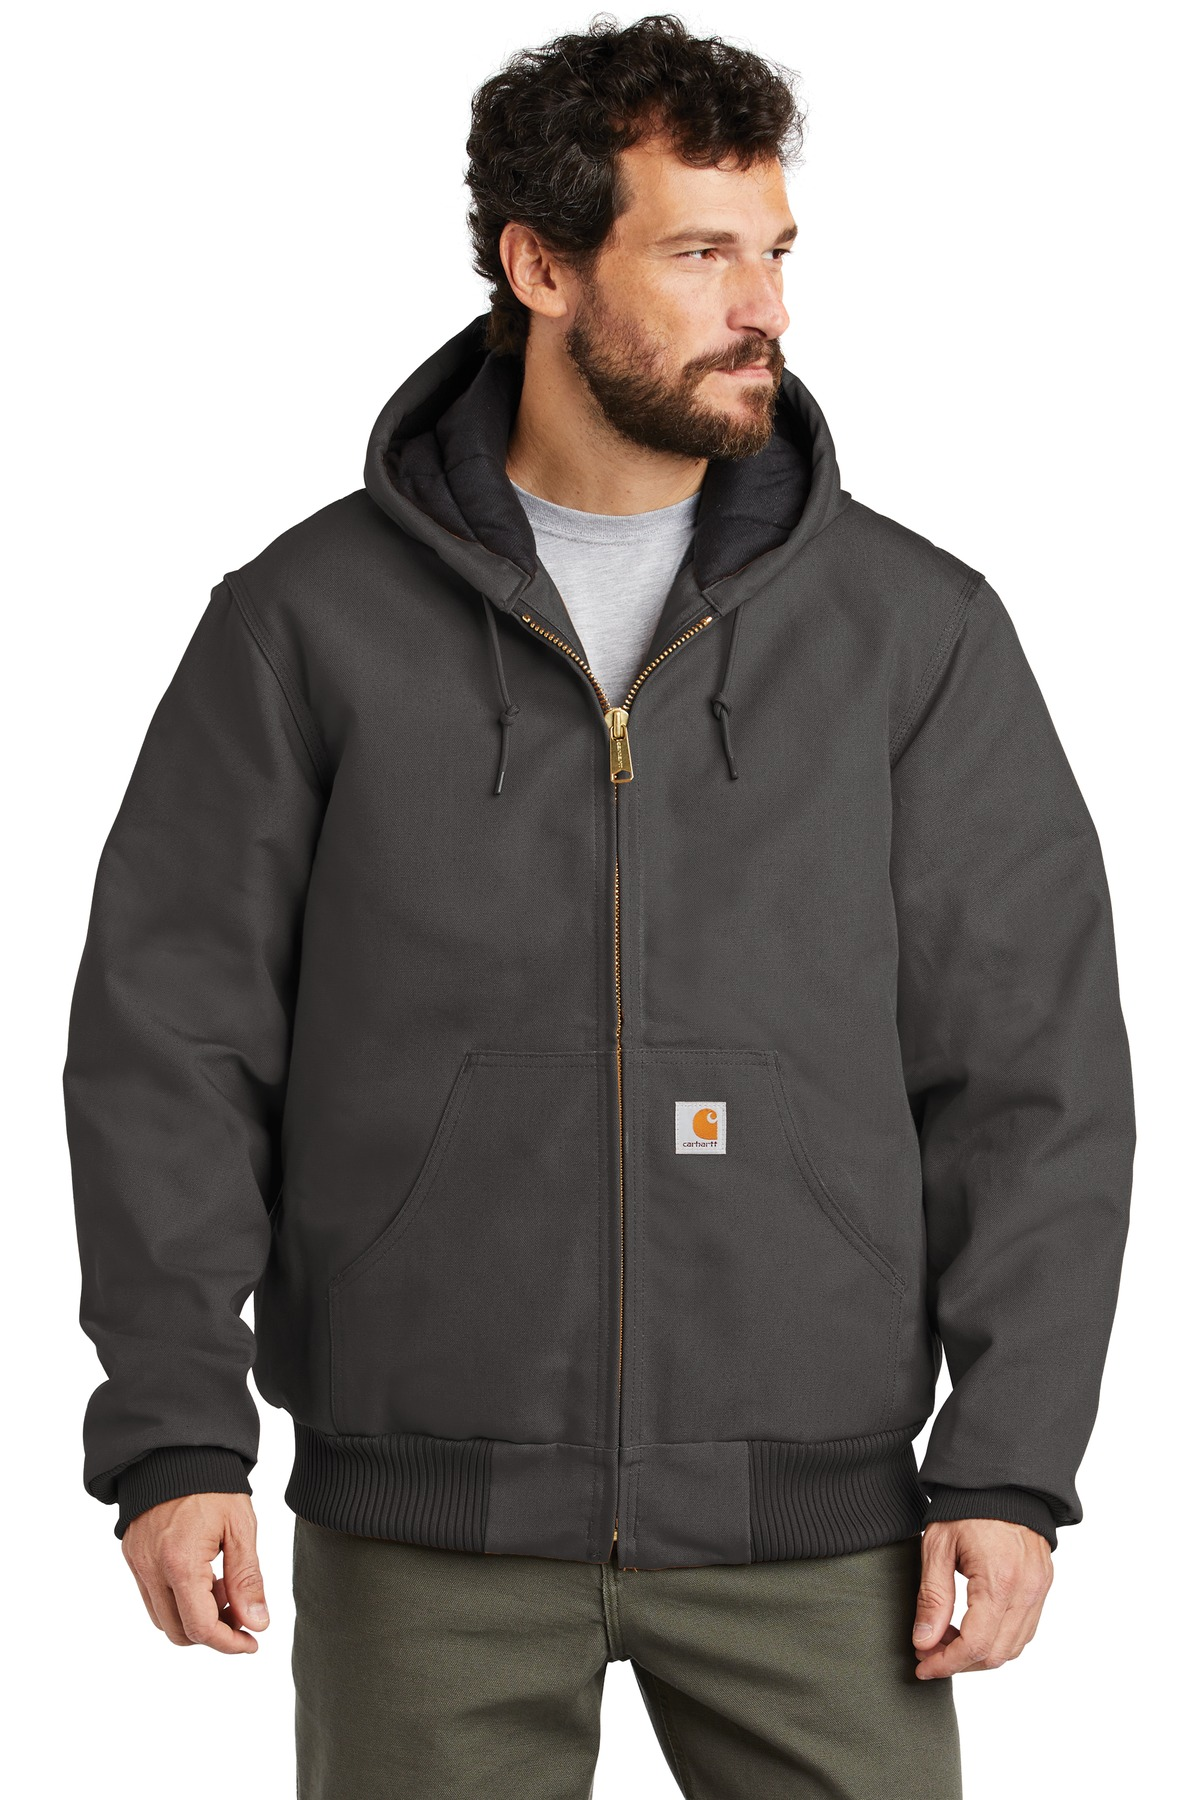 Carhartt  ®  Quilted-Flannel-Lined Duck Active Jac. CTSJ140 - Gravel